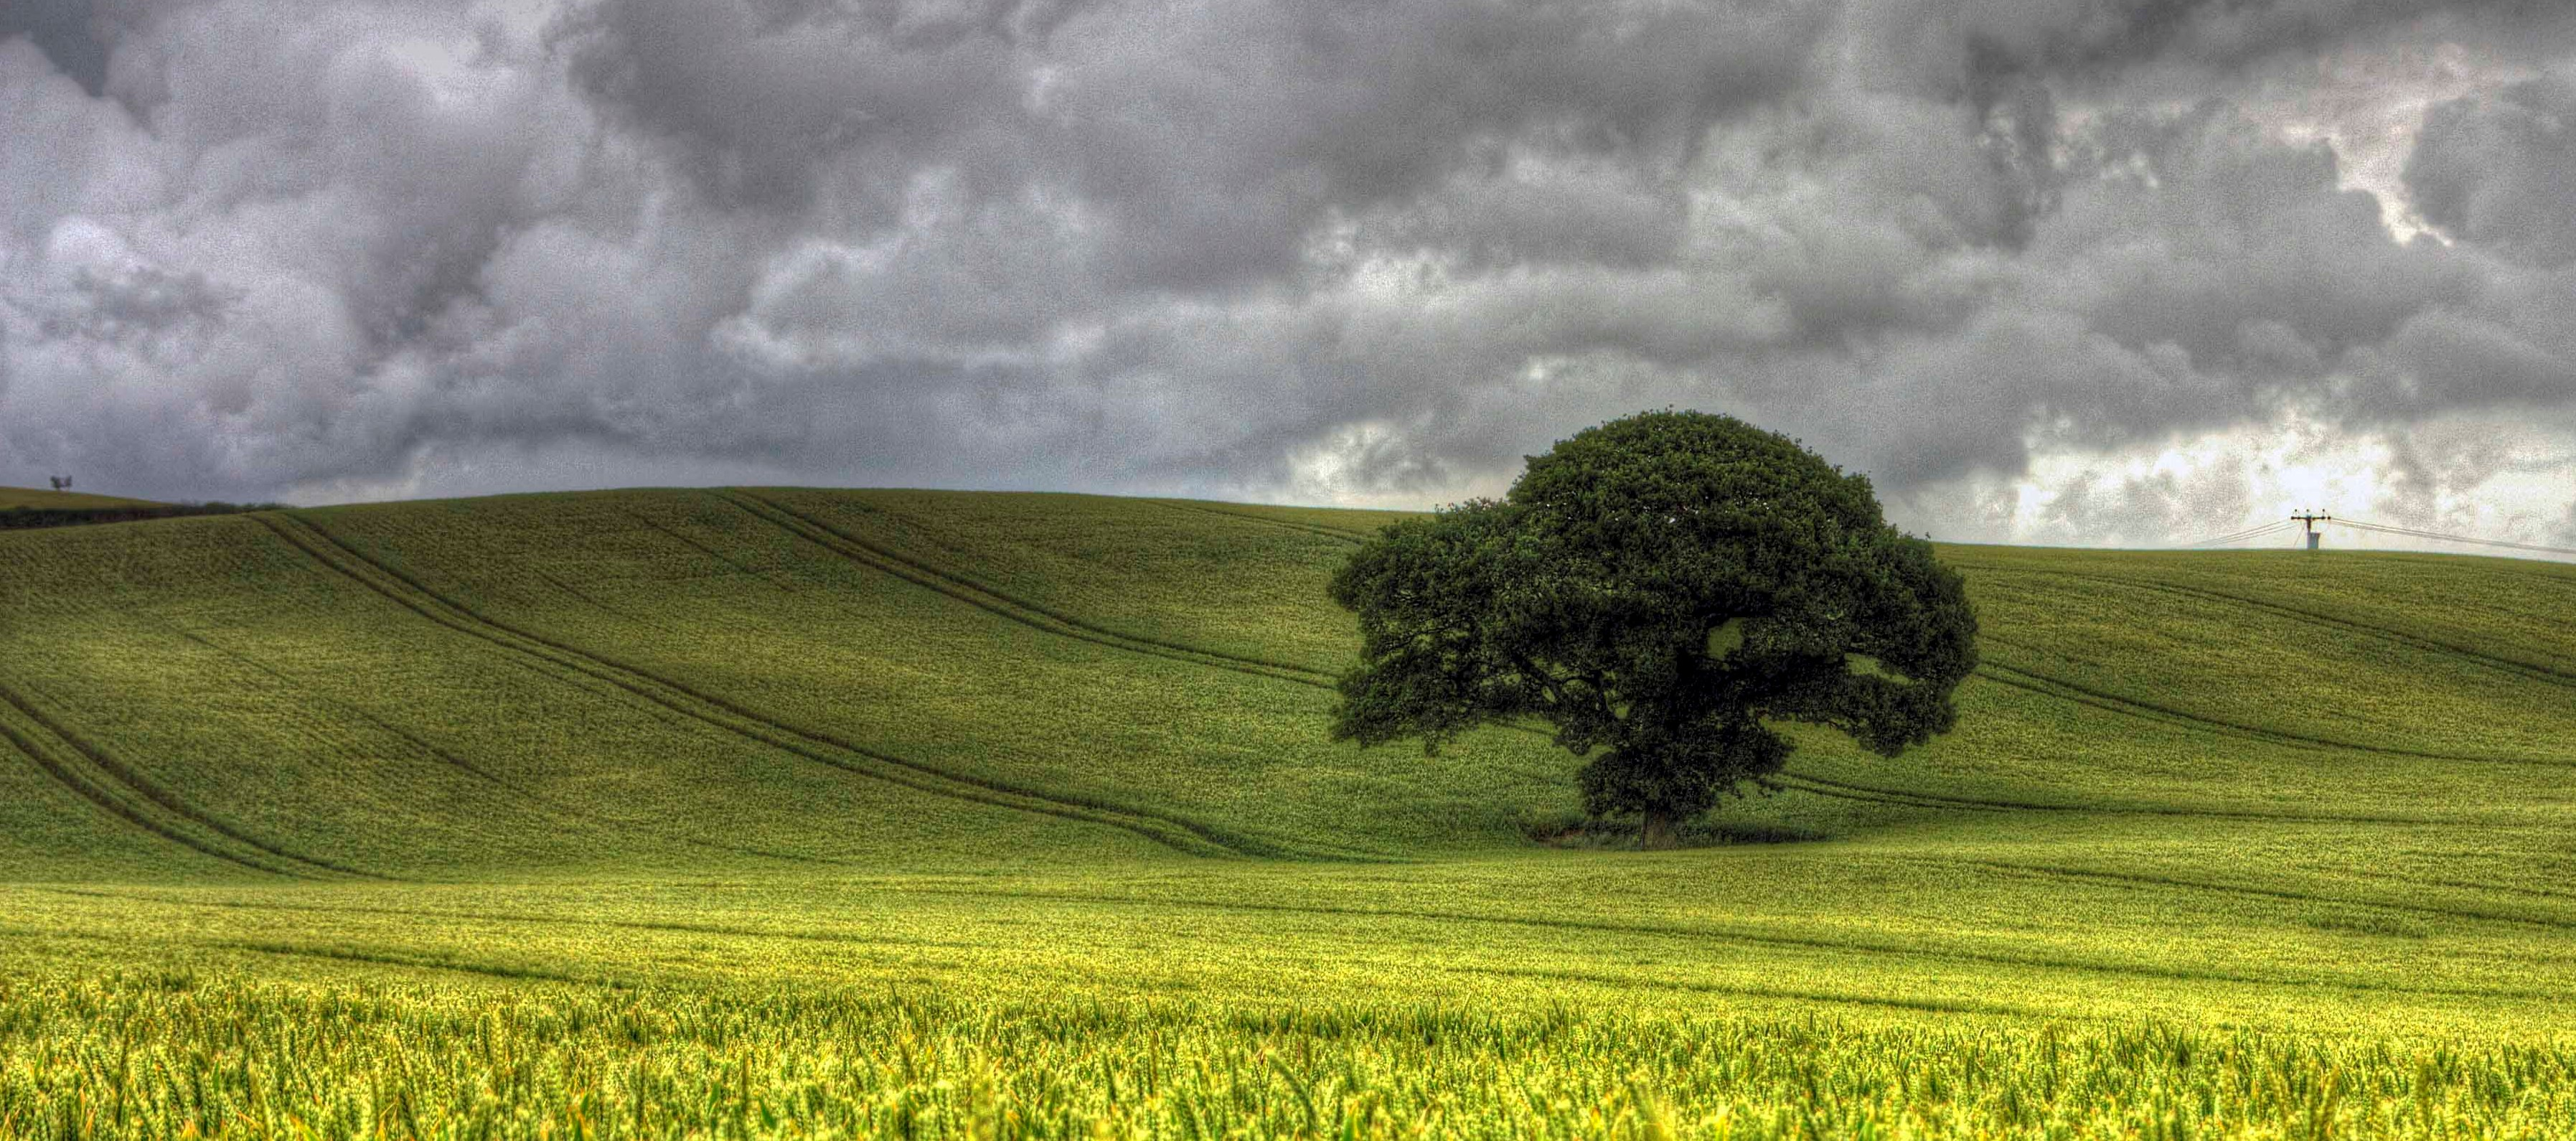 lone_tree_in_a_field_of_crops_near_michaelstone-y-fedw,south_wales_uk.jpg